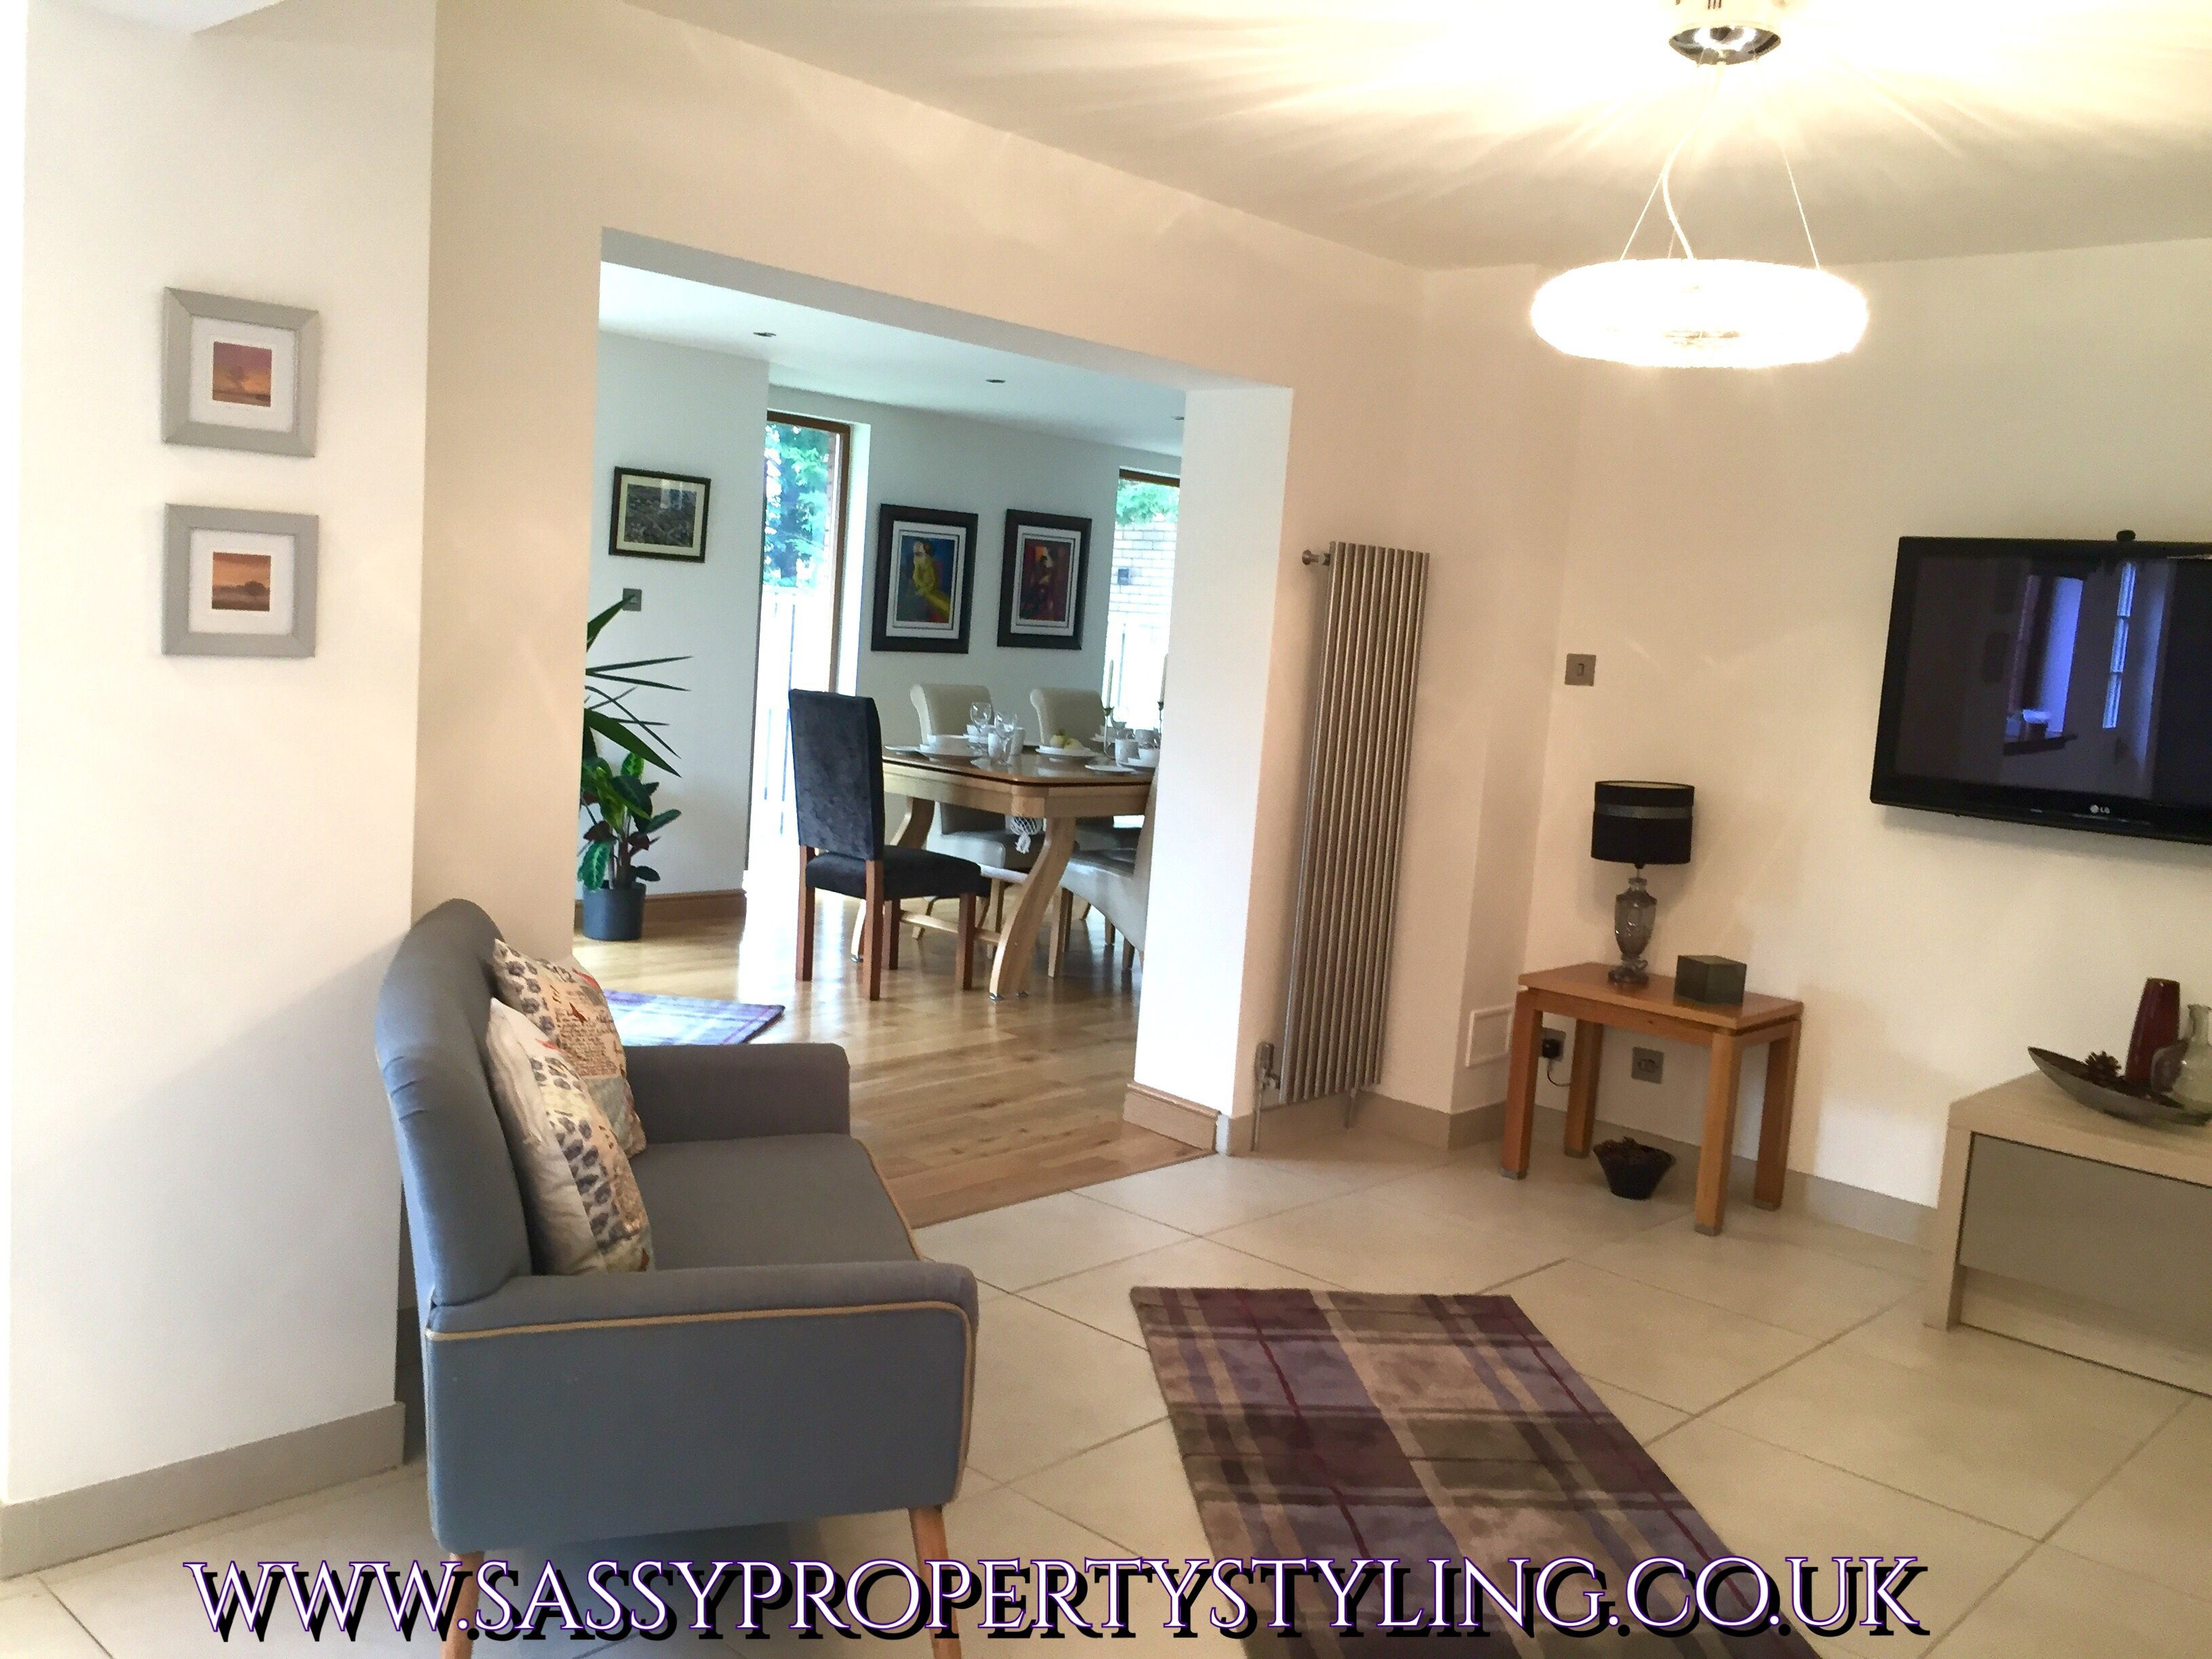 Need a show home?  Check out my latest staged property  https://vimeo.com/163763593 #sellyourhouse #homestage